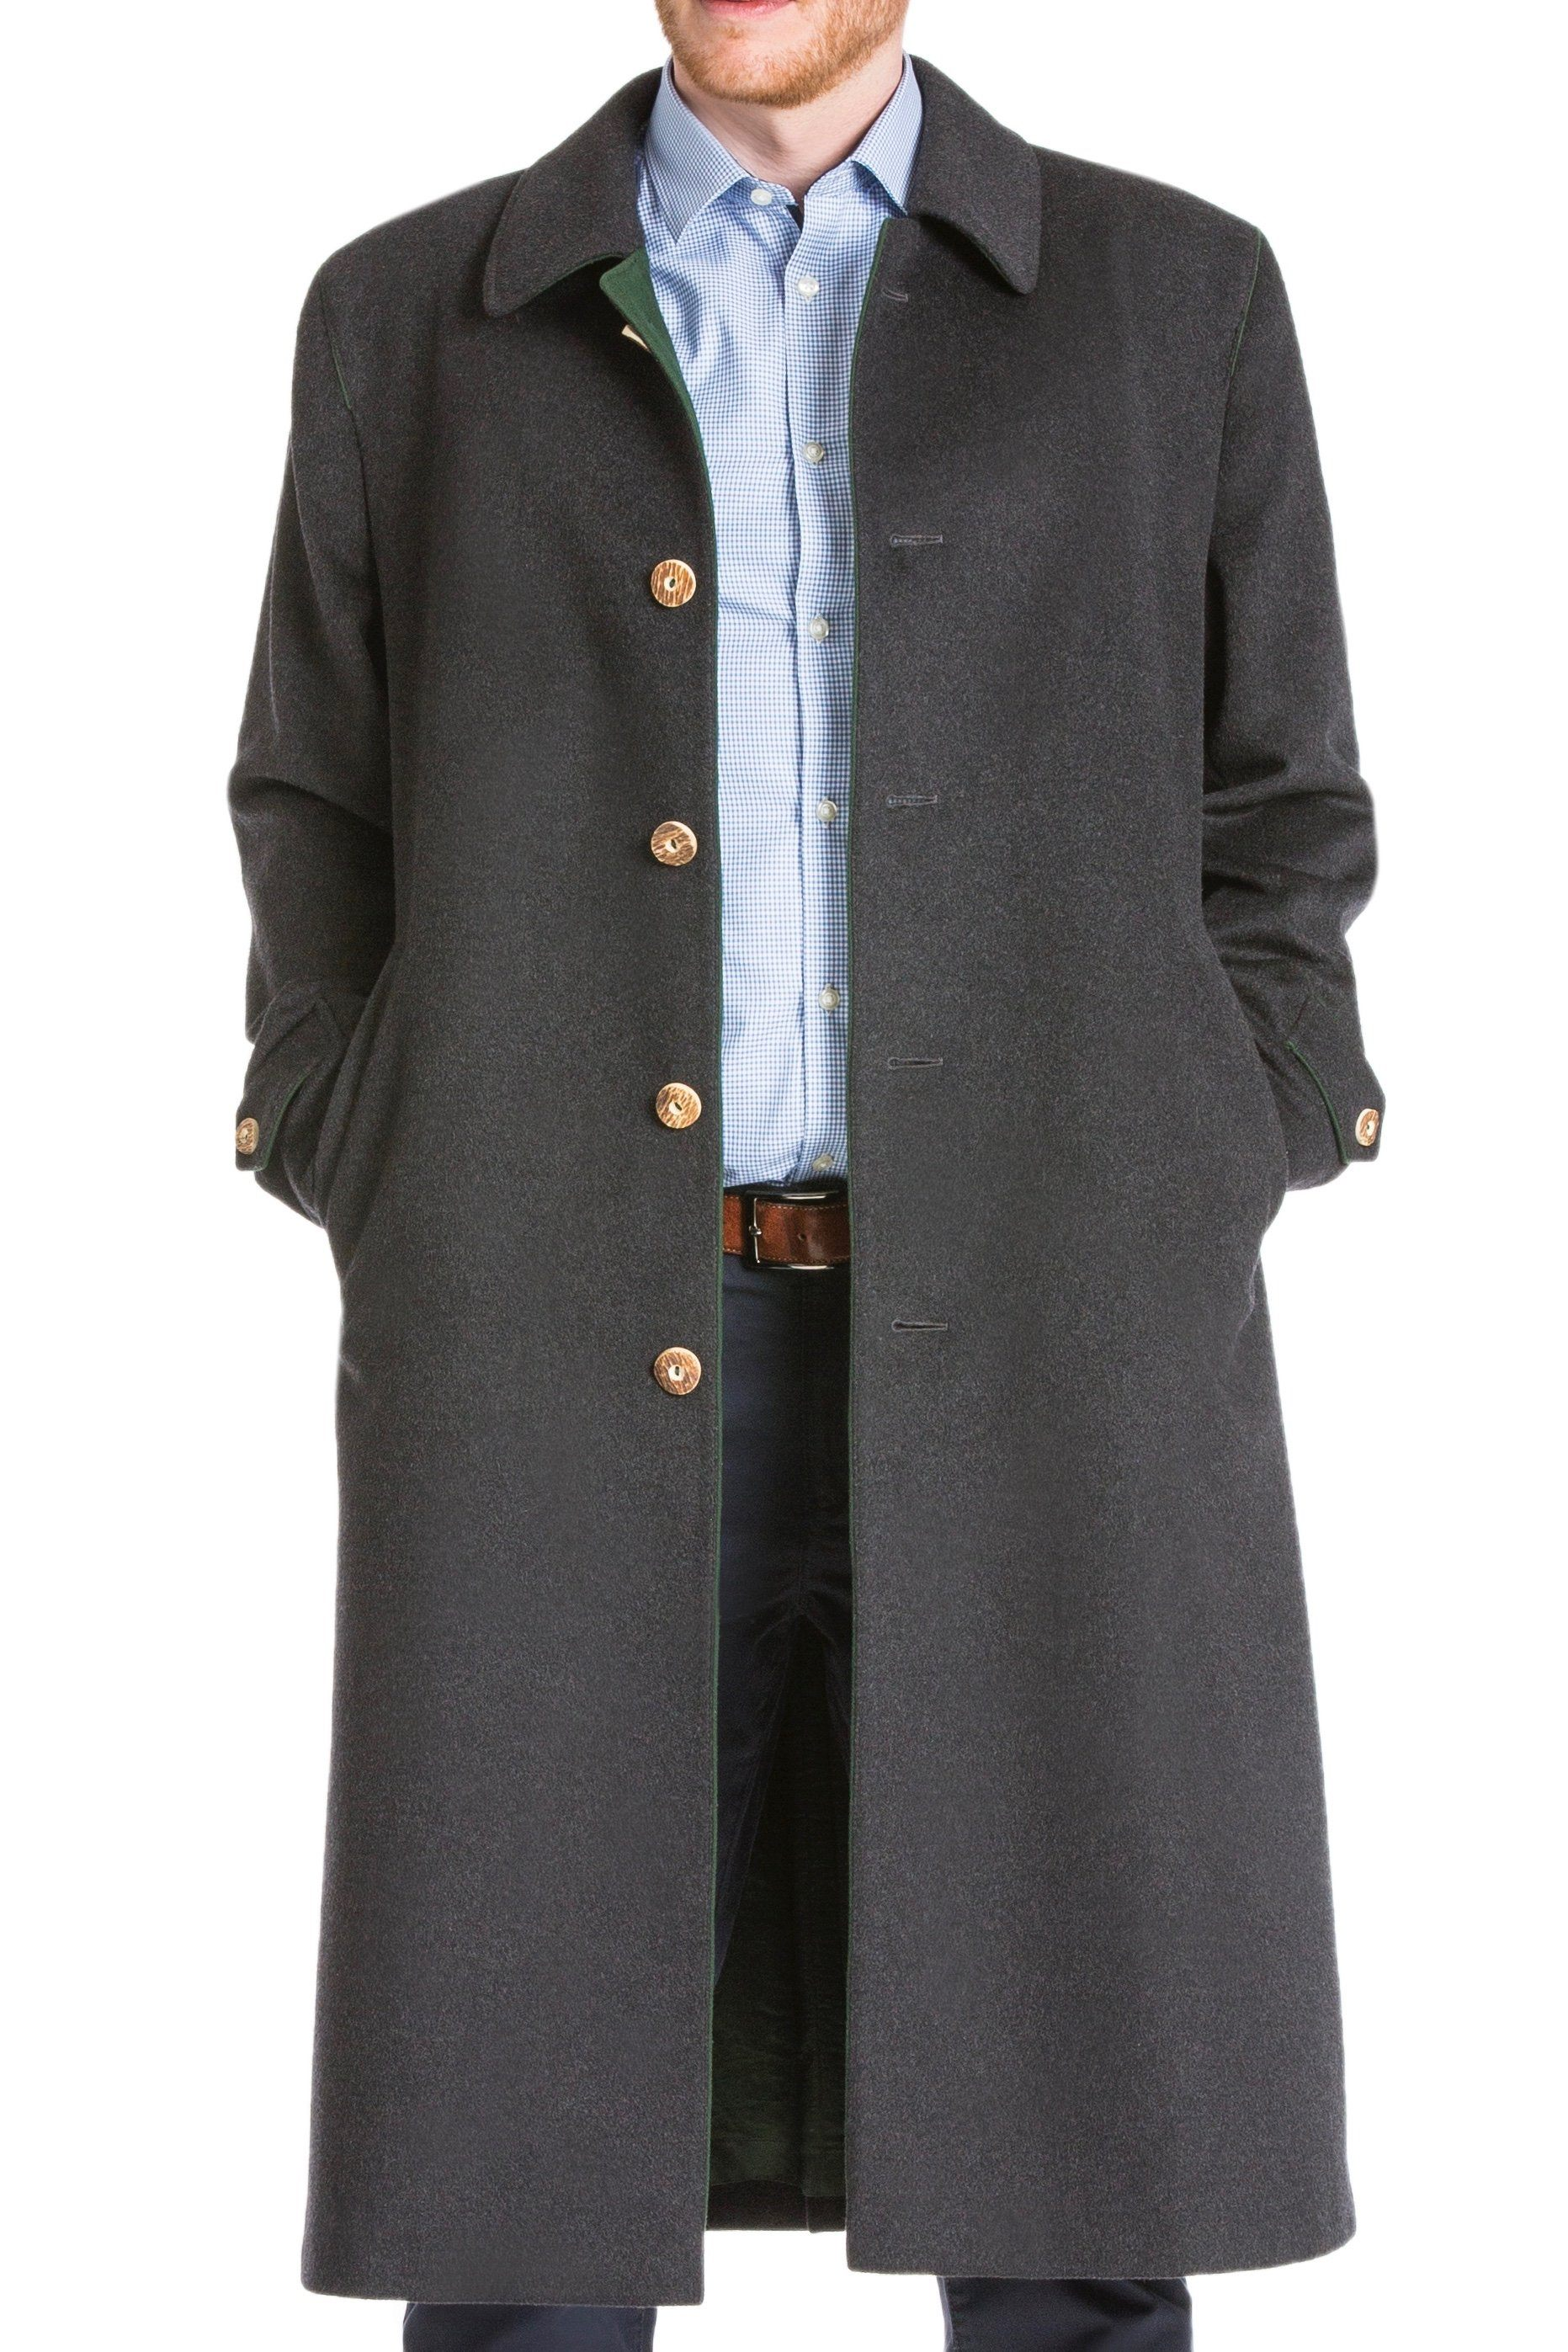 """Shiver No More"" Men's Classic Loden Overcoat"